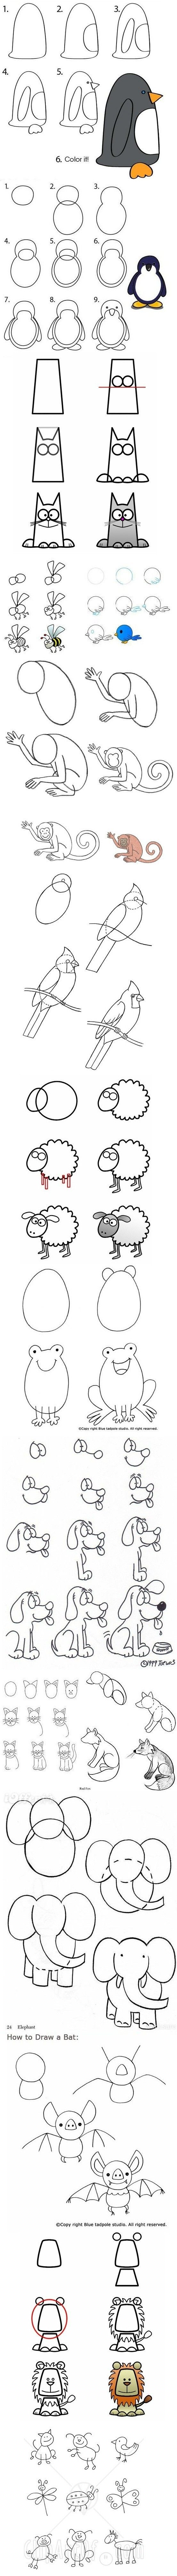 How to draw animals. Could easily use these to make animals with paper for scrapbooking accents :)